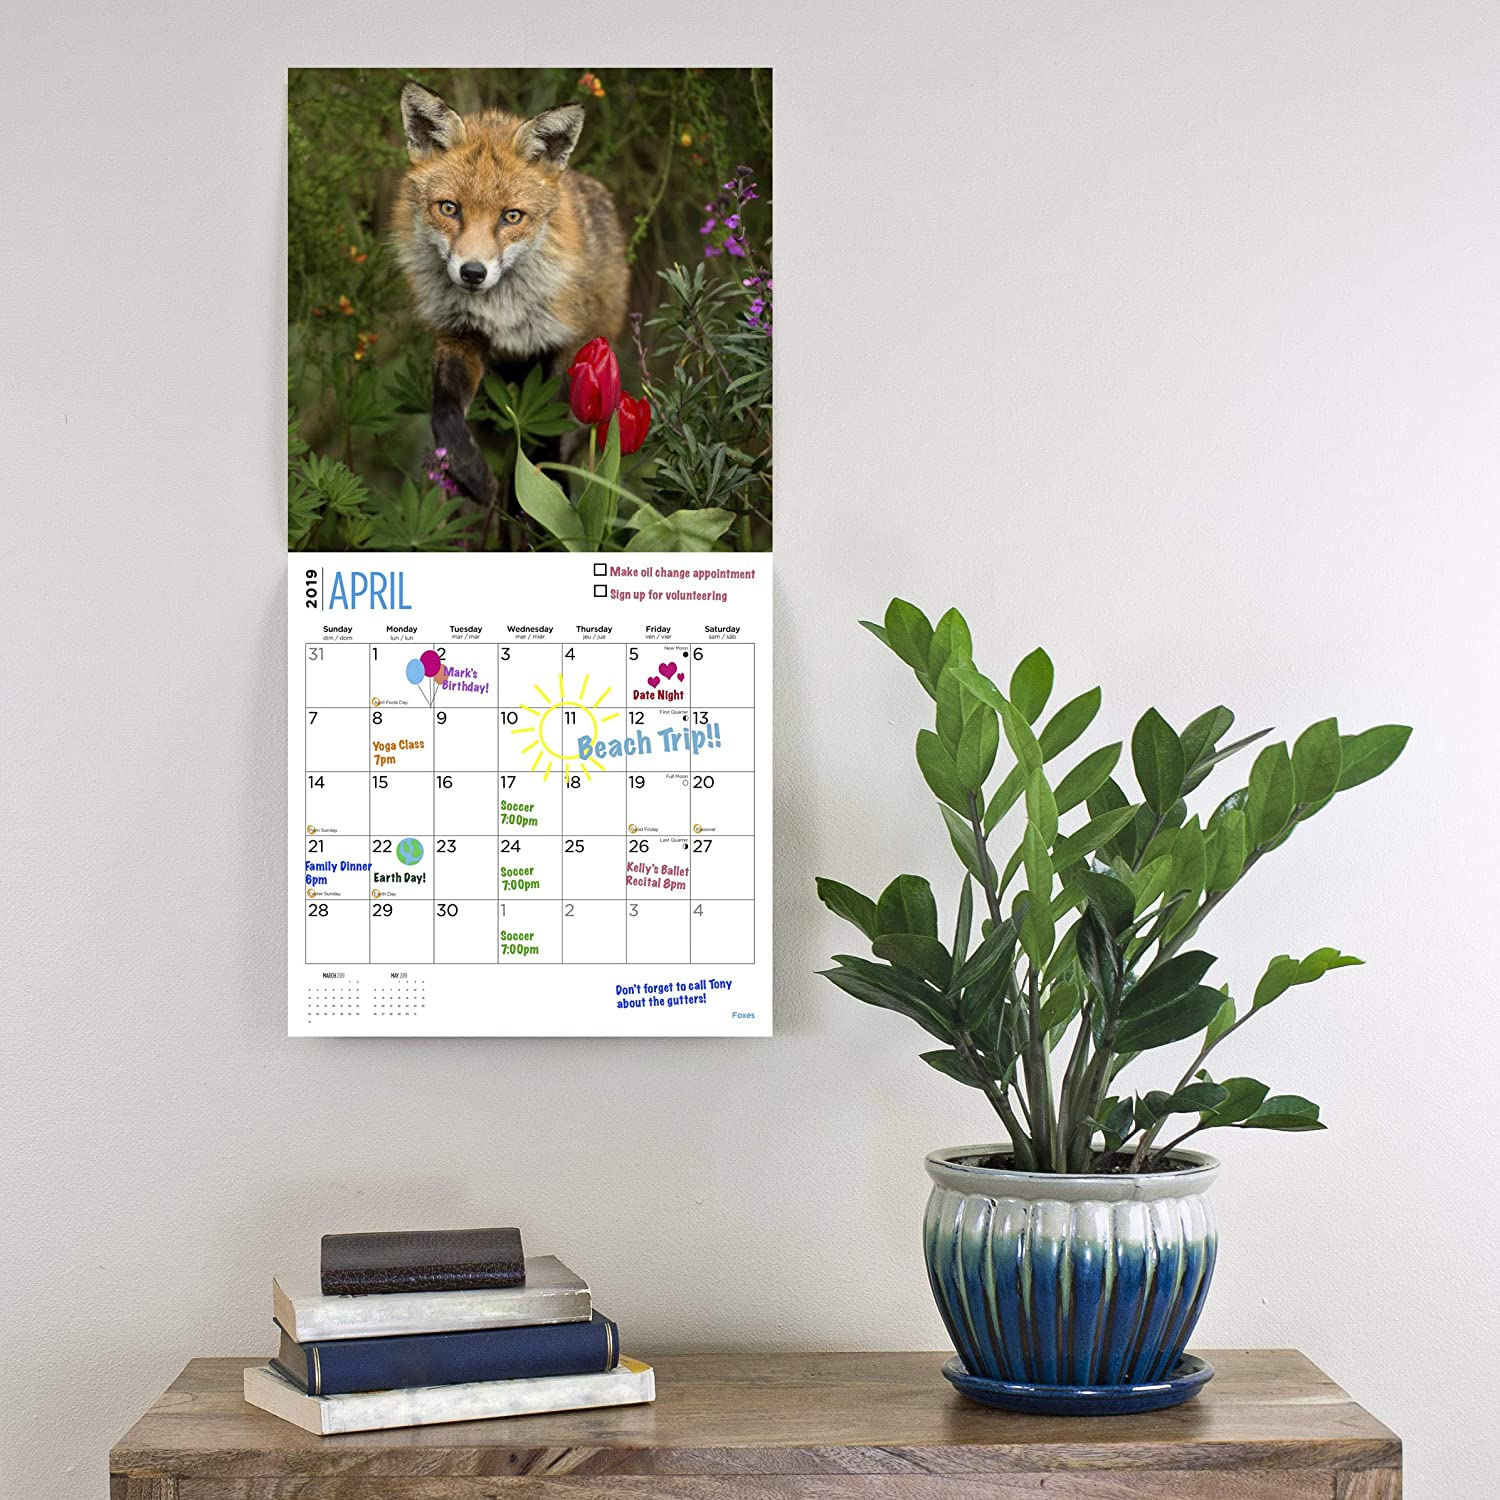 Wild Animal Collection 2020 Sloths Calendar 16 Month 12 x 12 Wall Calendar by Bright Day Calendars